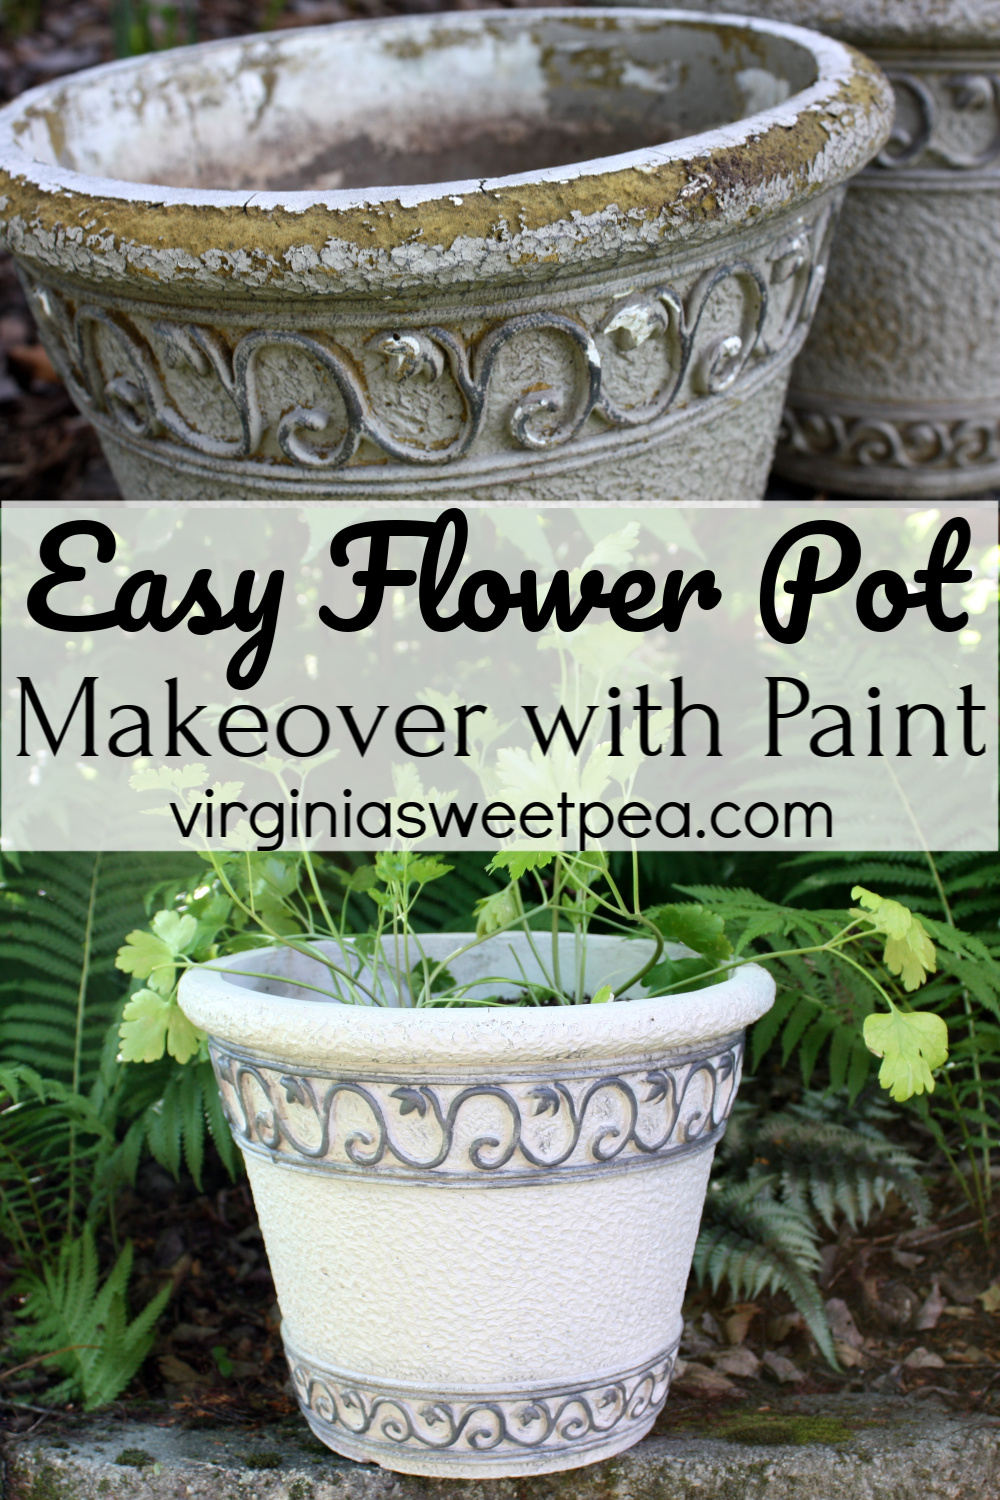 How to Makeover Flower Pots with Paint - Learn how to give worn flower pots a fresh new look with paint. This technique lasts for years! #flowerpotmakeover #howtopaintflowerpots via @spaula